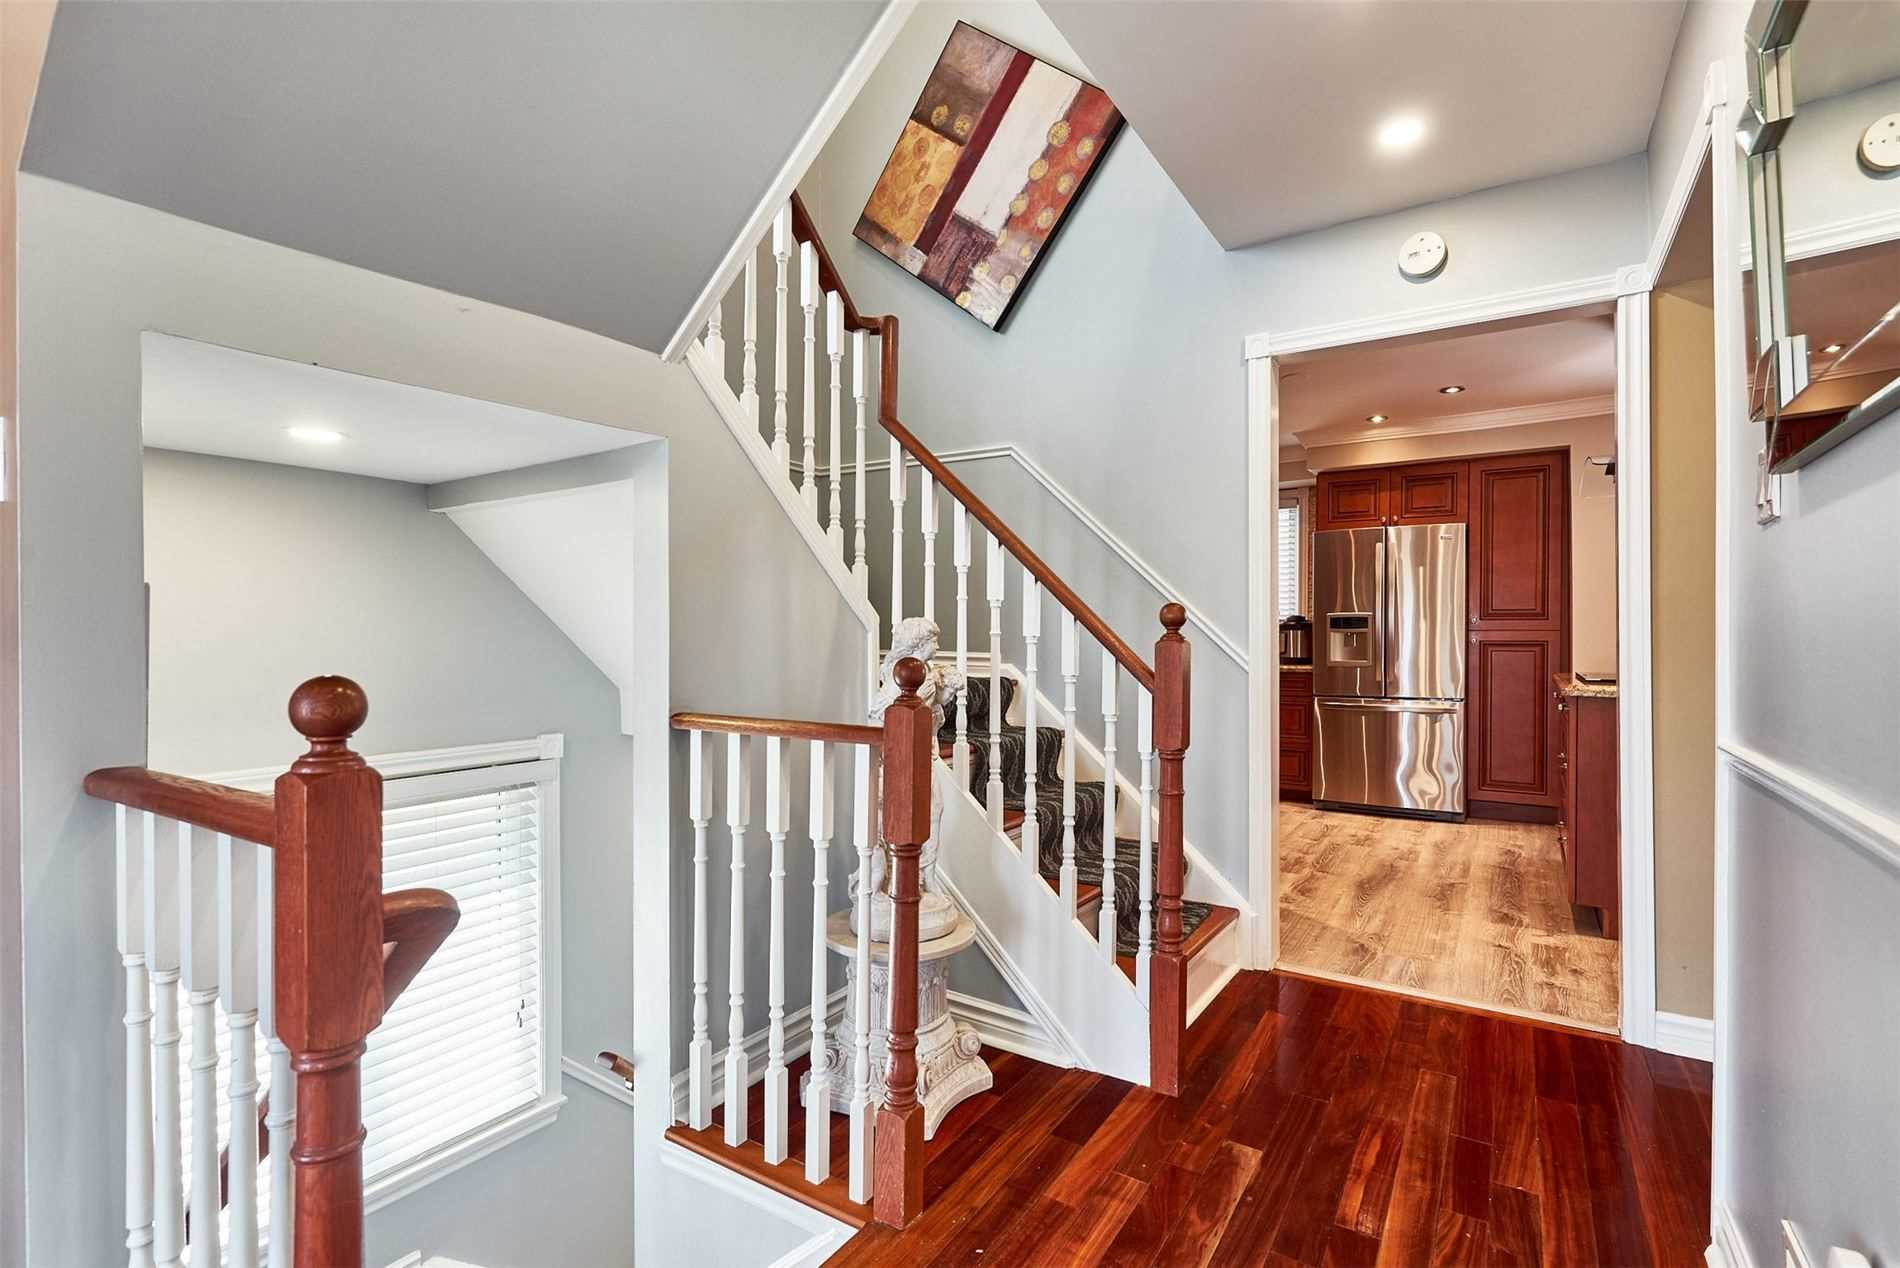 Image 28 of 33 showing inside of 3 Bedroom Condo Townhouse 2-Storey for Sale at 33 Clover Ridge Dr W Unit# 9, Ajax L1S3M5